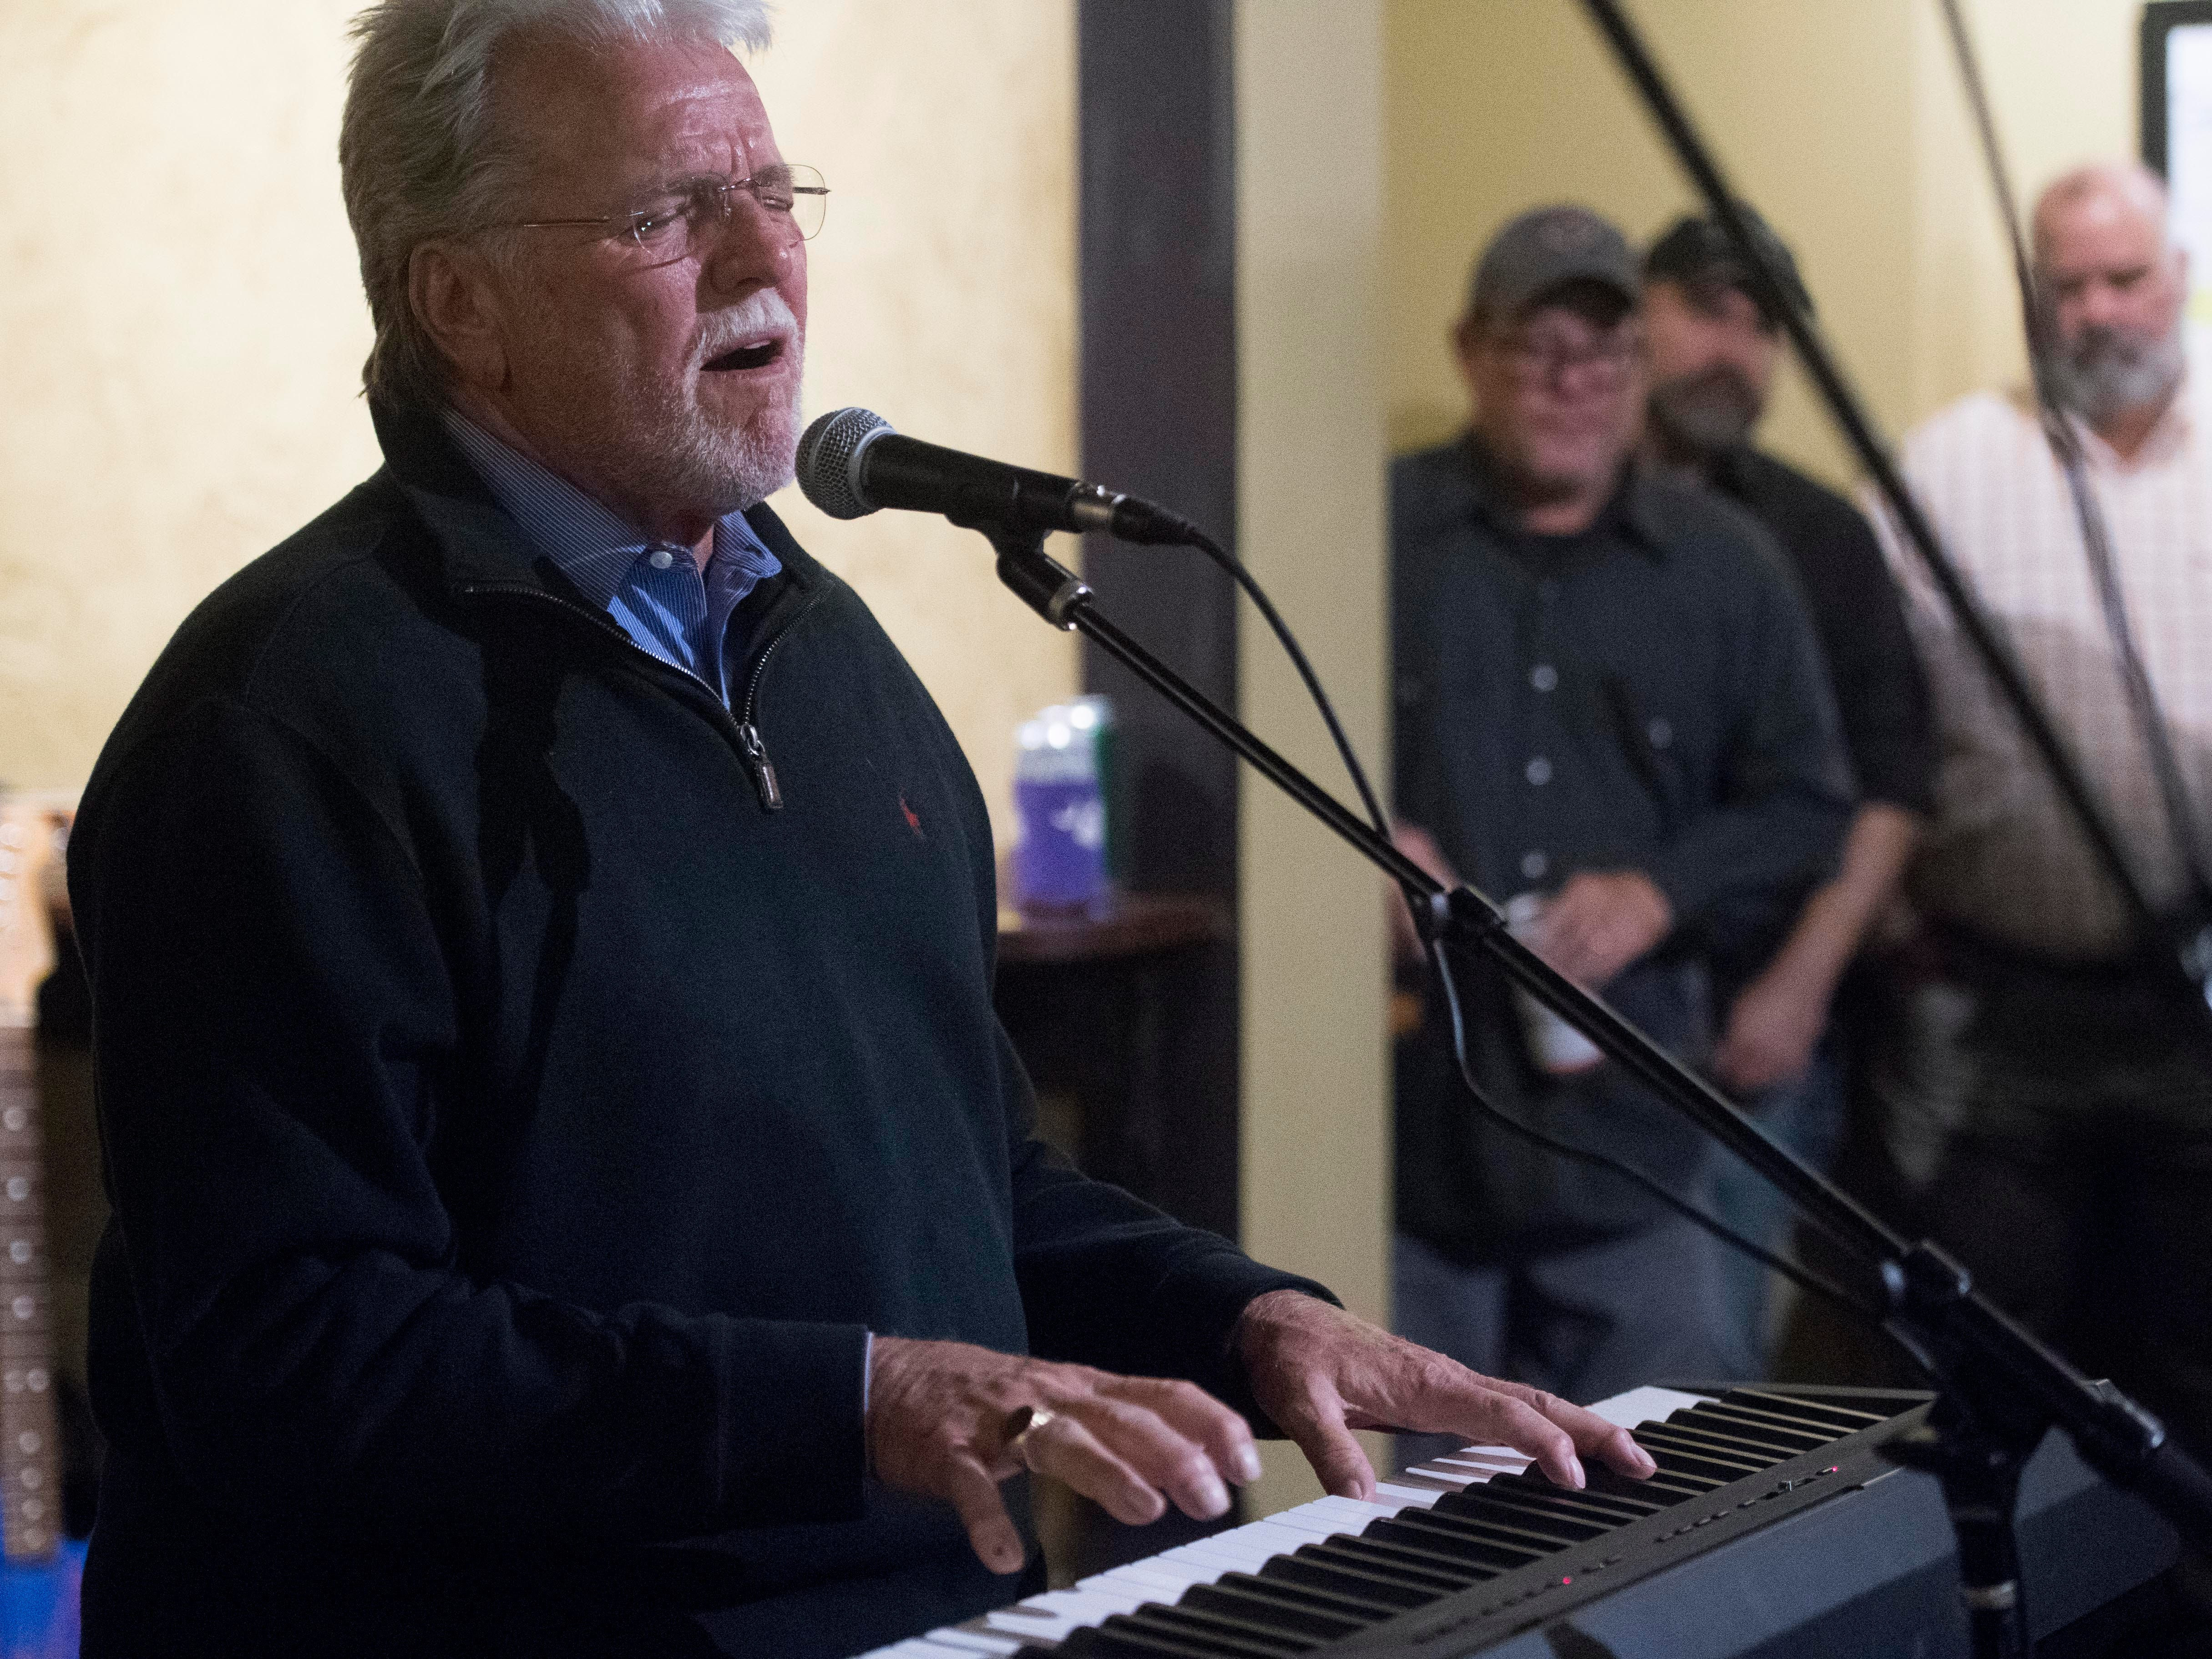 Con Hunley returns to The Corner Lounge with a surprise concert with Mic Harrison and the High Score on Friday, October 19, 2018.